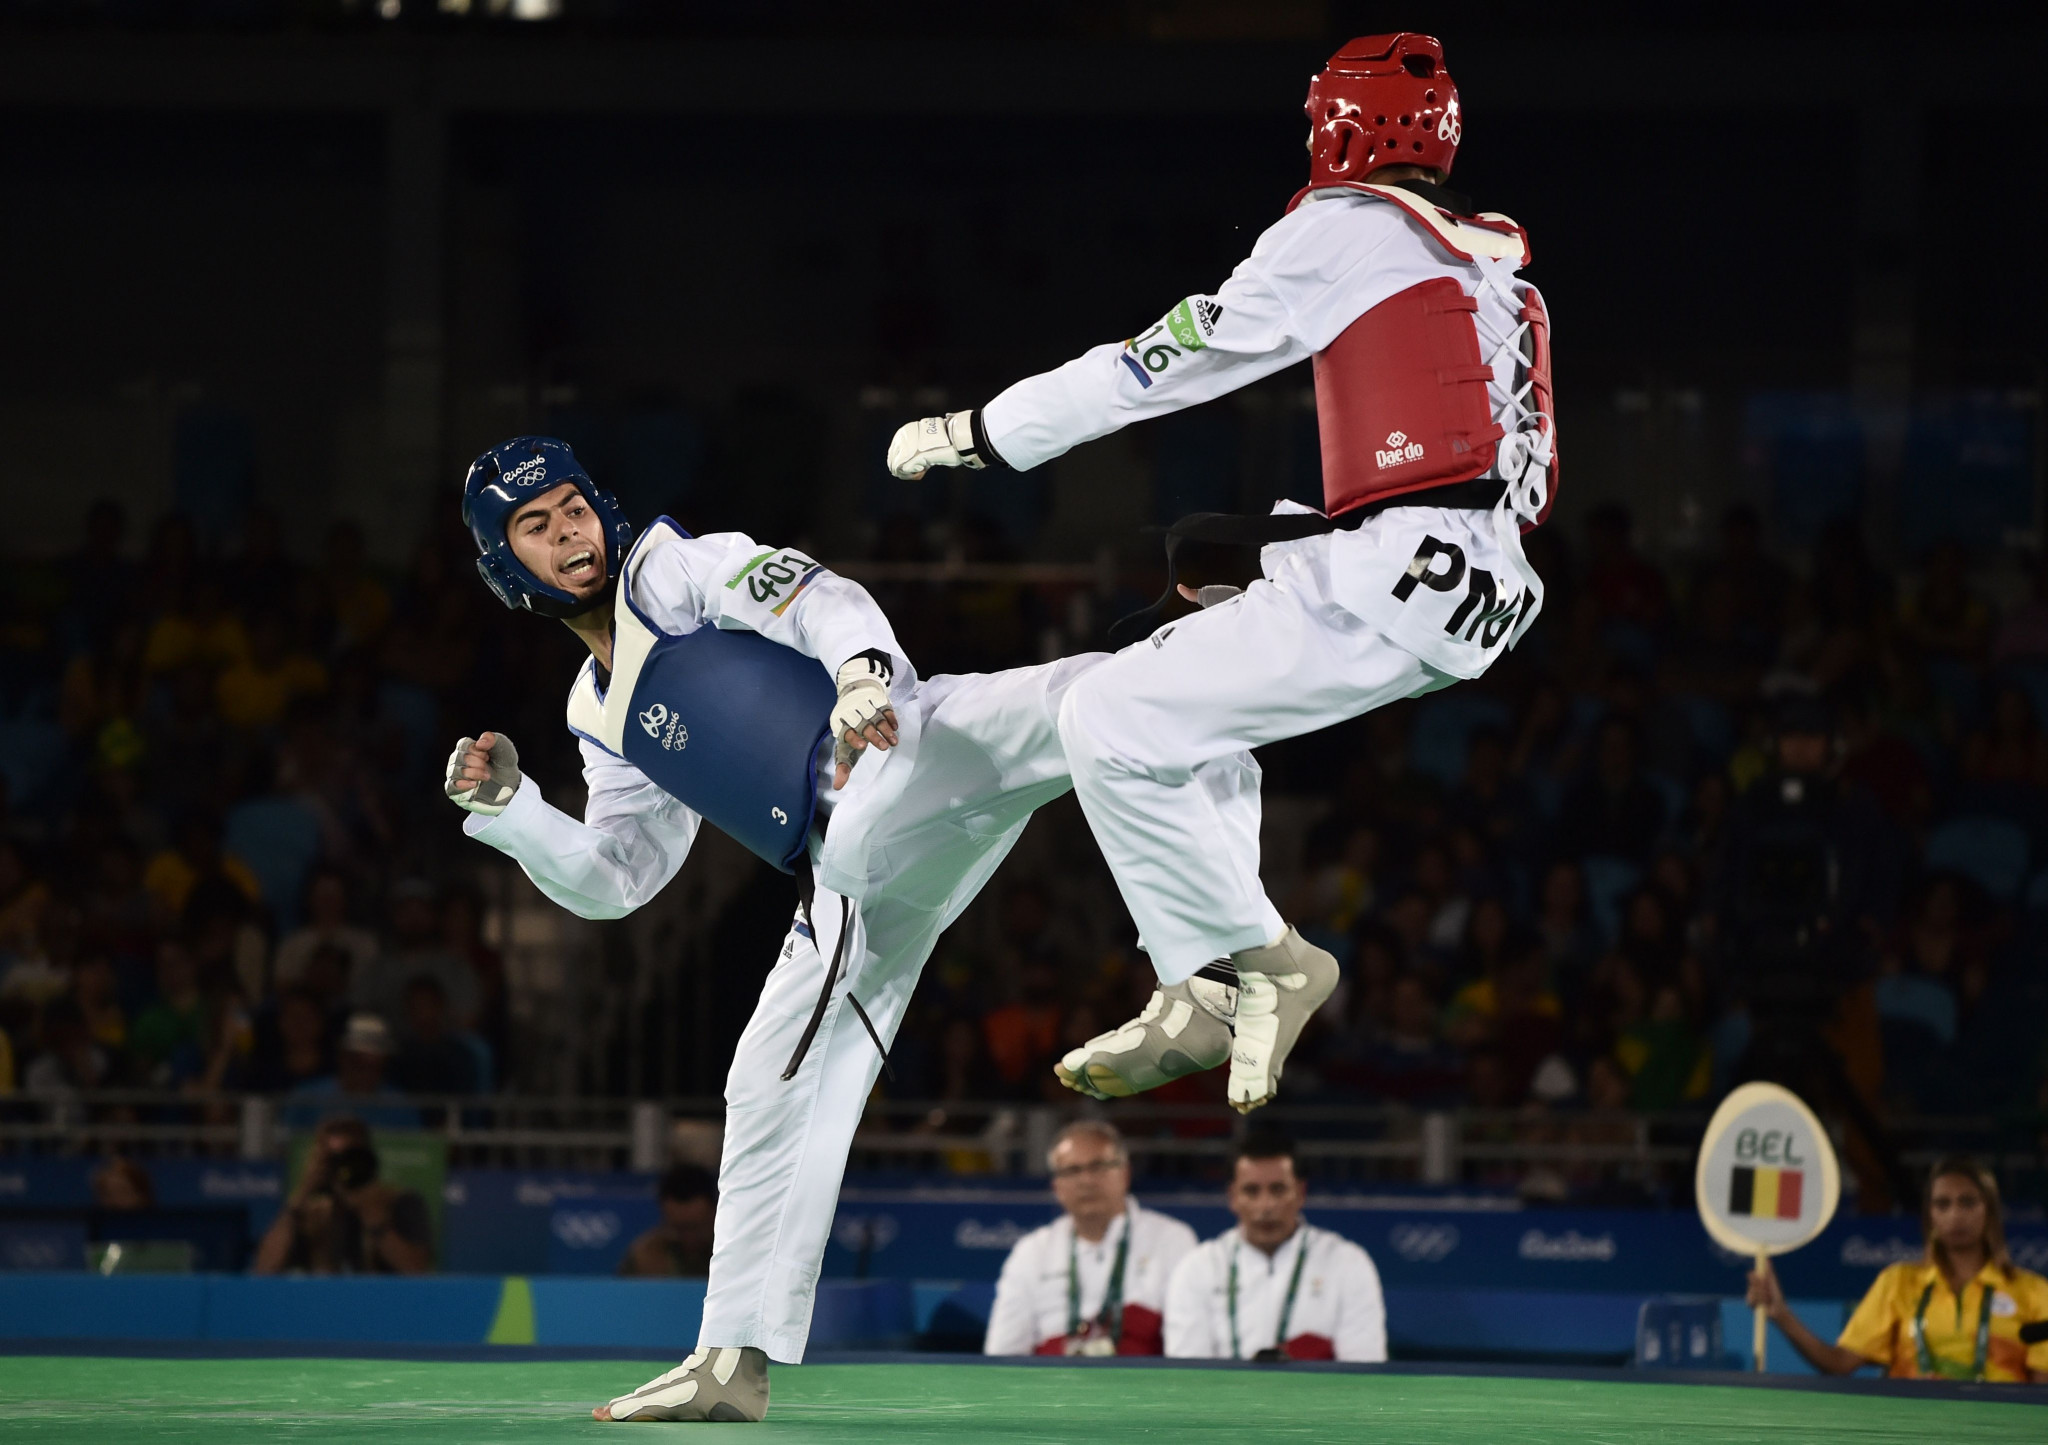 Three taekwondo fighters from Papua New Guinea are in training for the Tokyo 2020 Oceania qualifier ©Getty Images